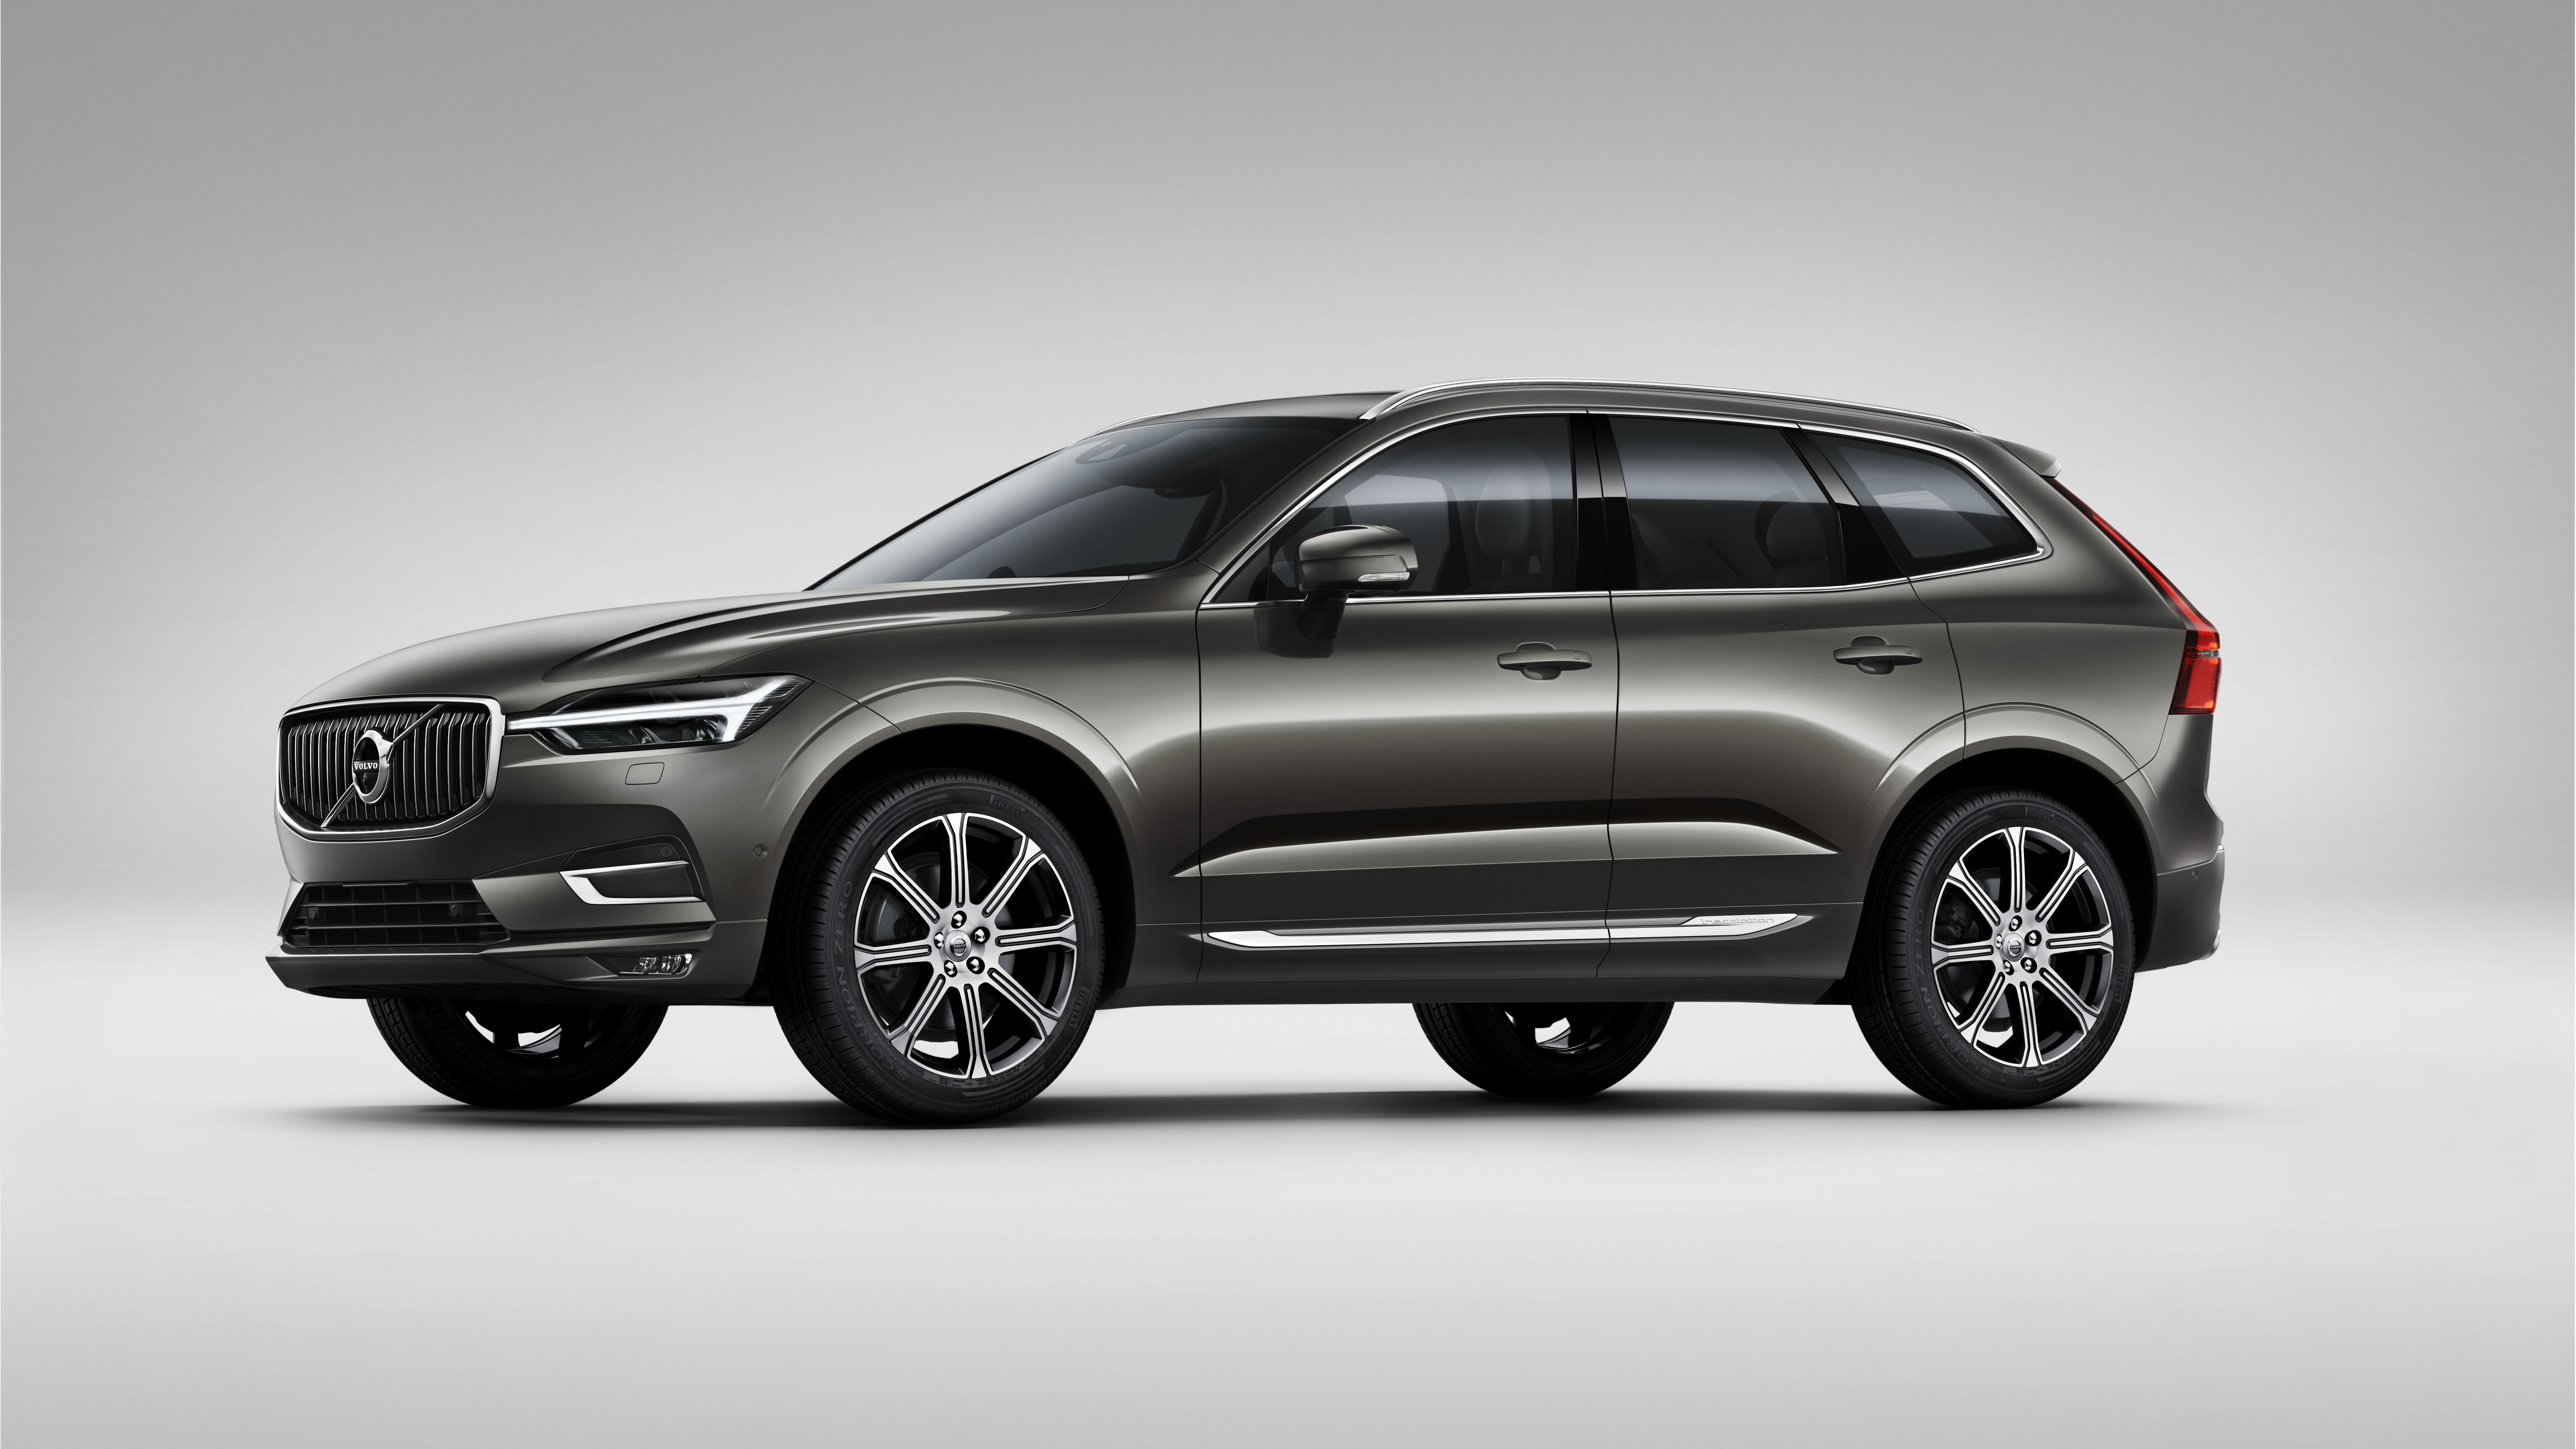 steer reveals claim technology added full safest safety of system all the ie city is new ever cars inscription been one made to assist which has volvo rev